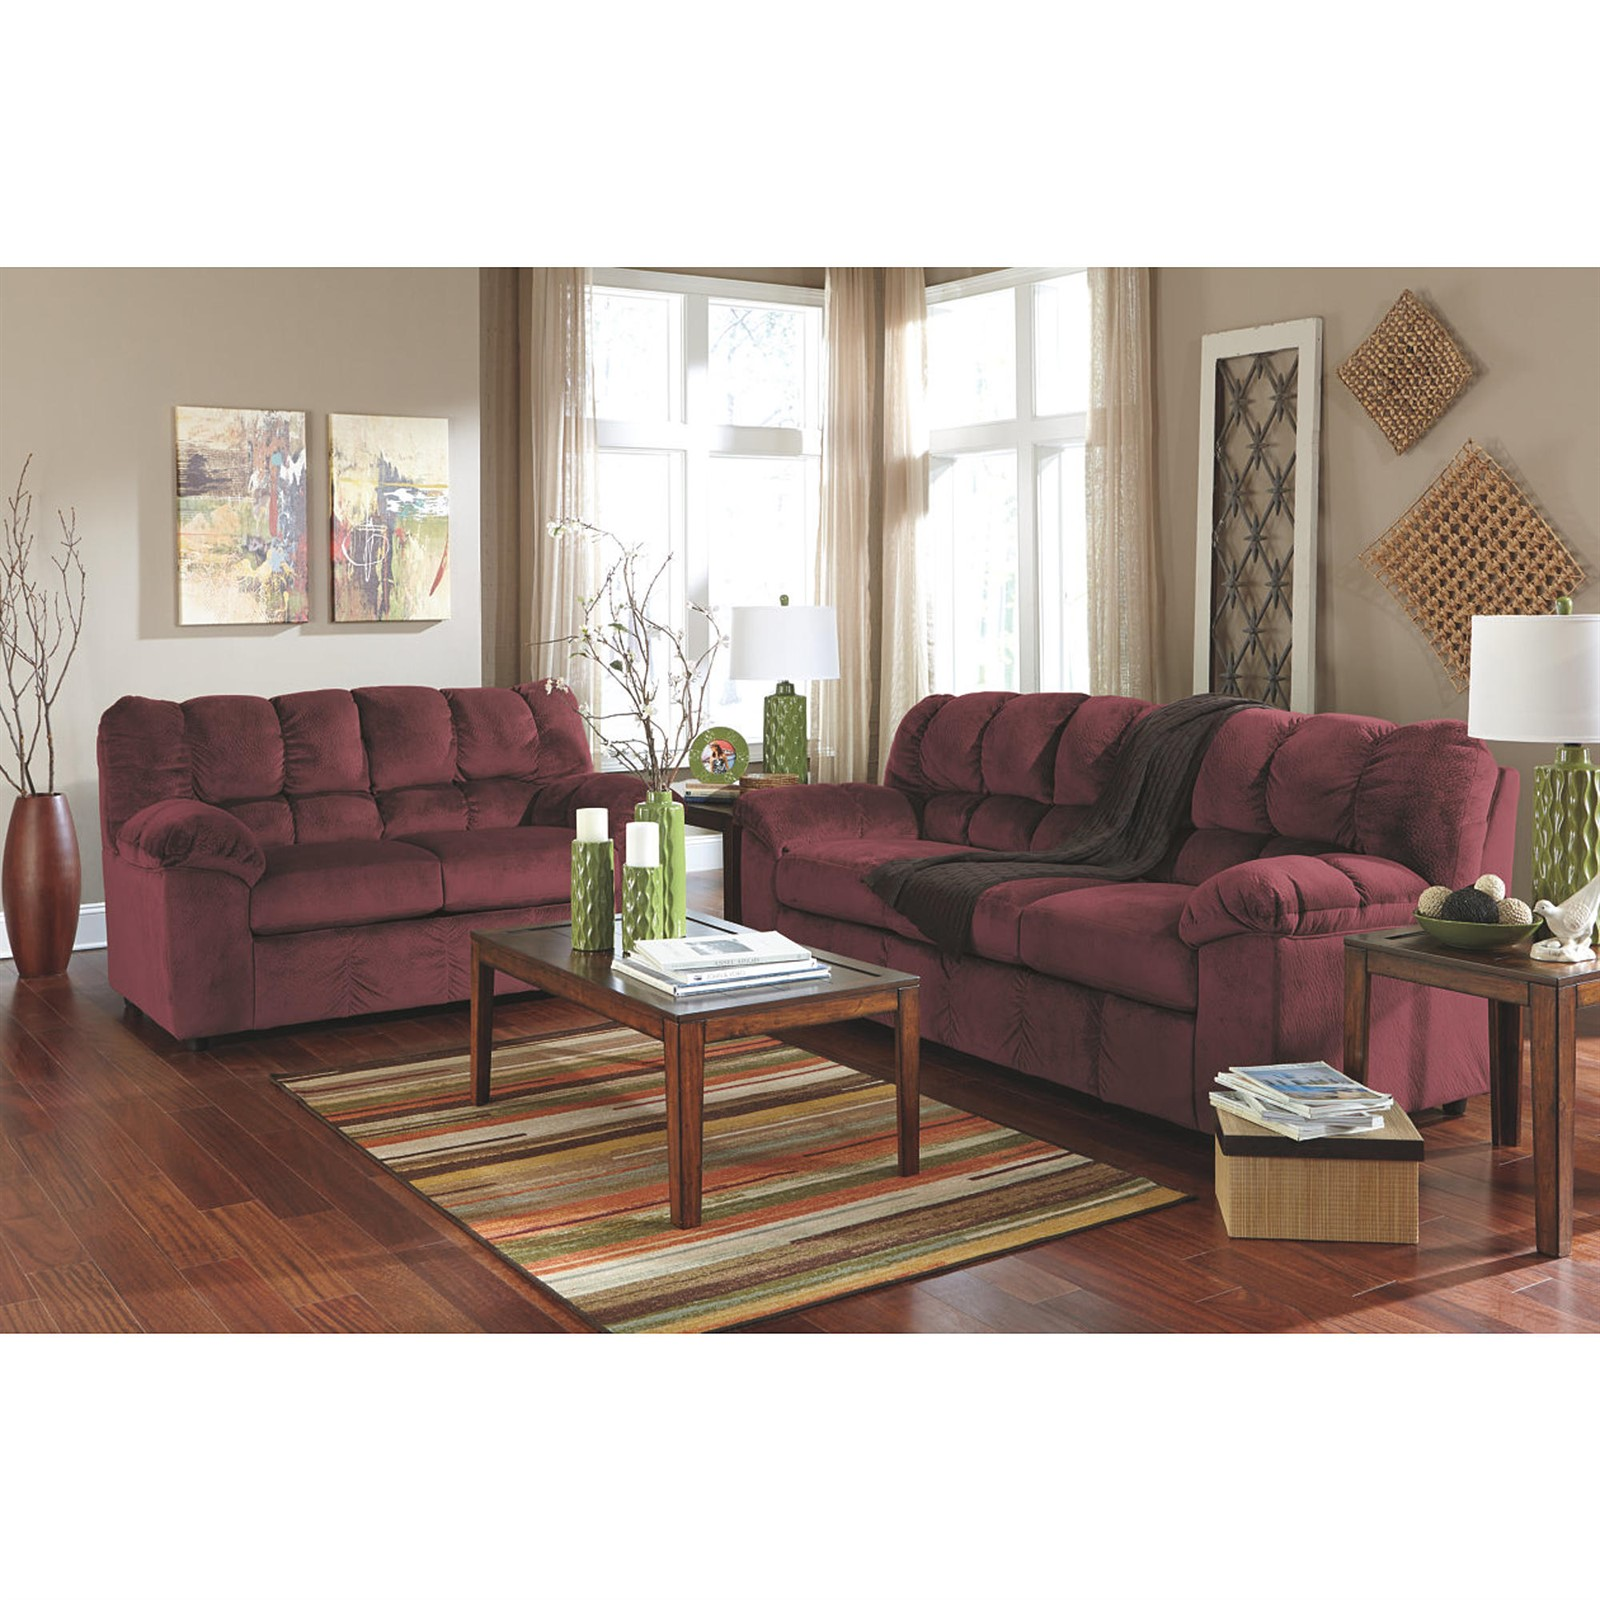 Signature Design by Ashley Julson Burgundy Living Room Set